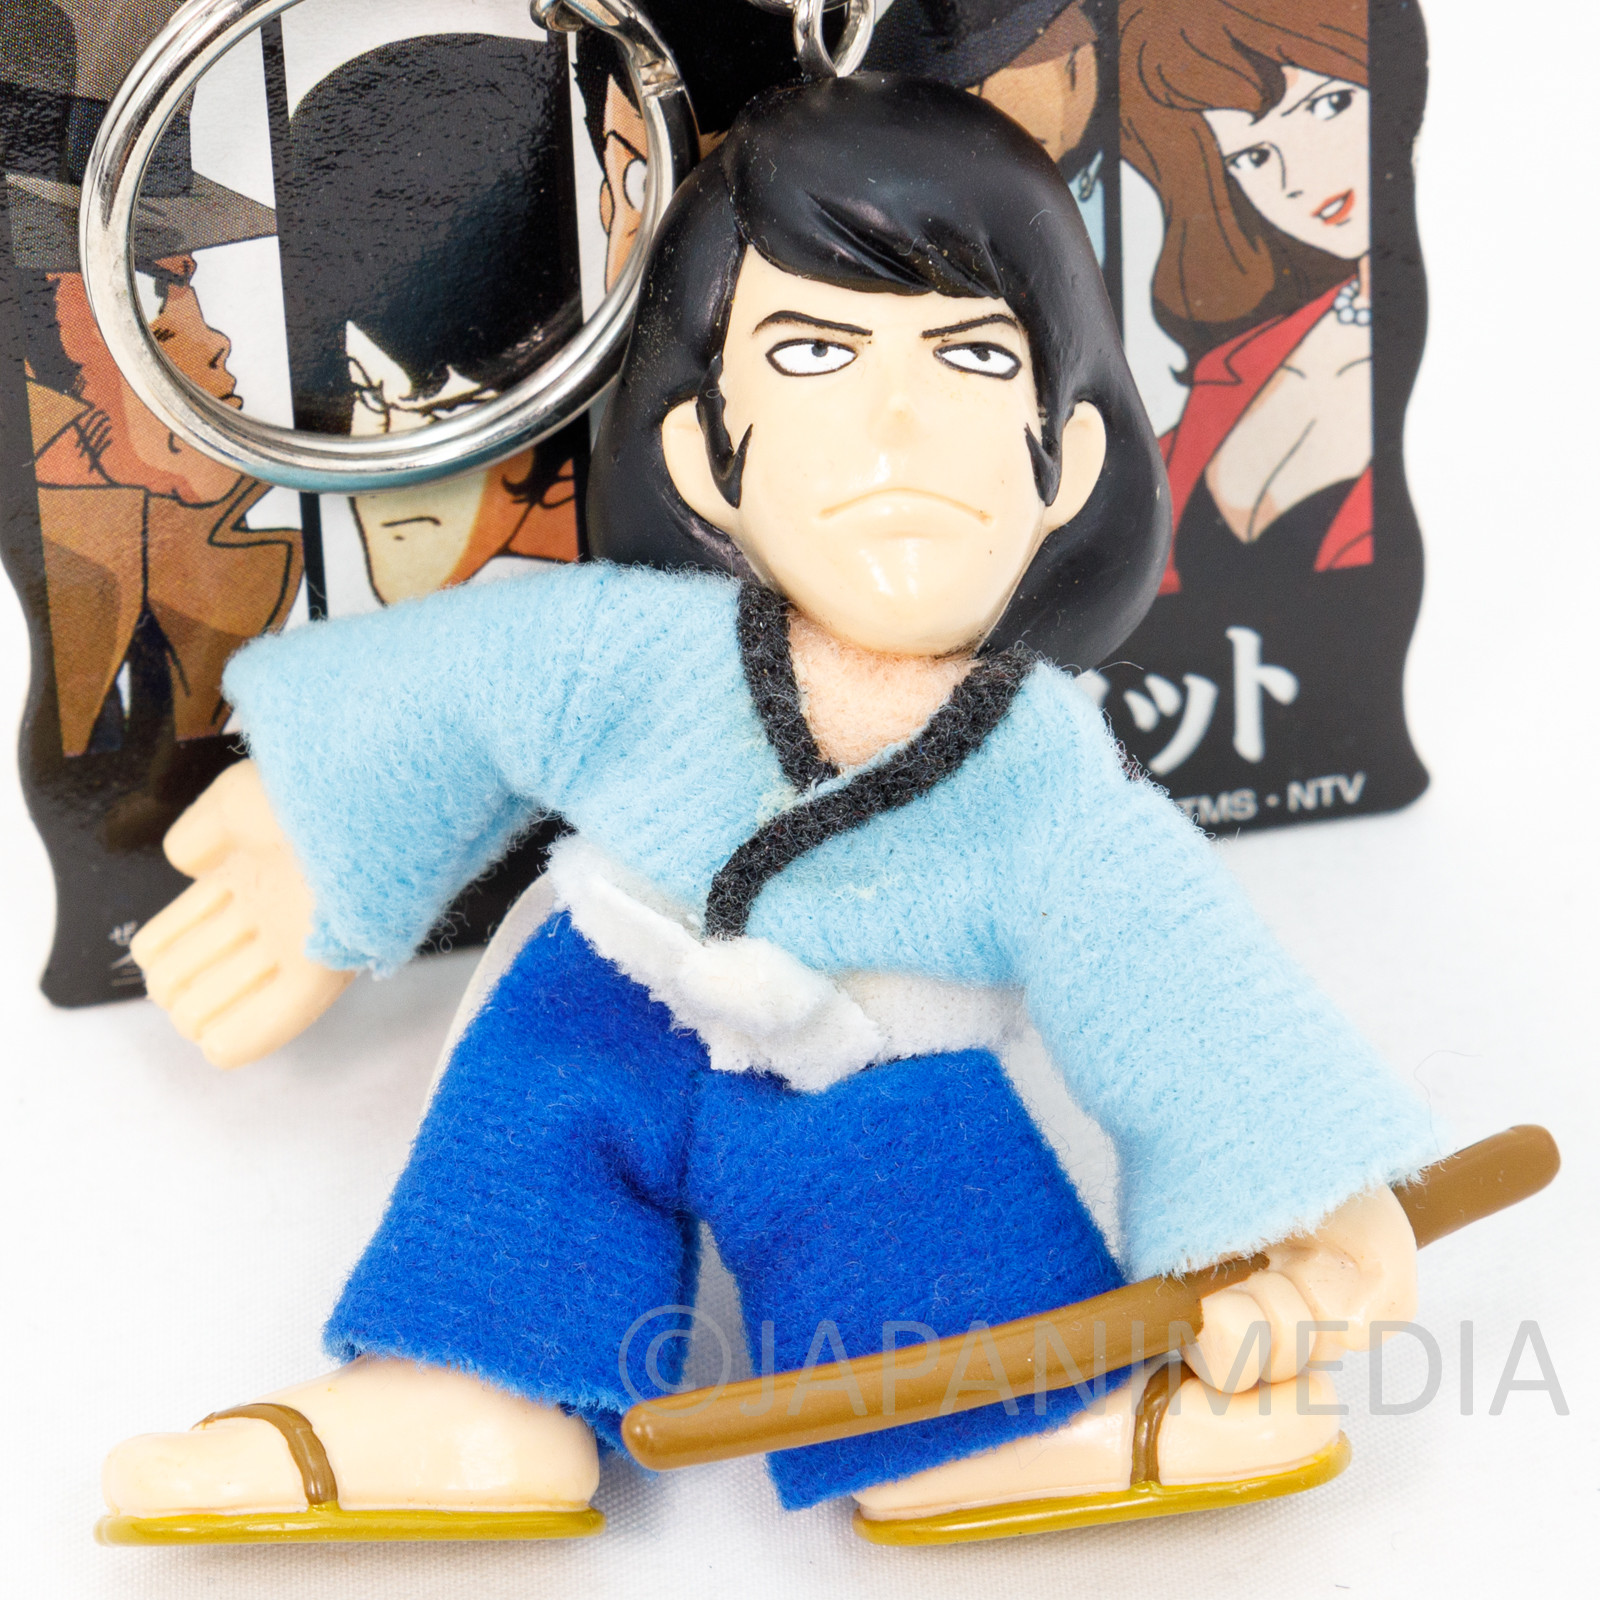 Lupin the Third (3rd) Goemon Ishikawa Figure Doll Keychain Banpresto JAPAN ANIME